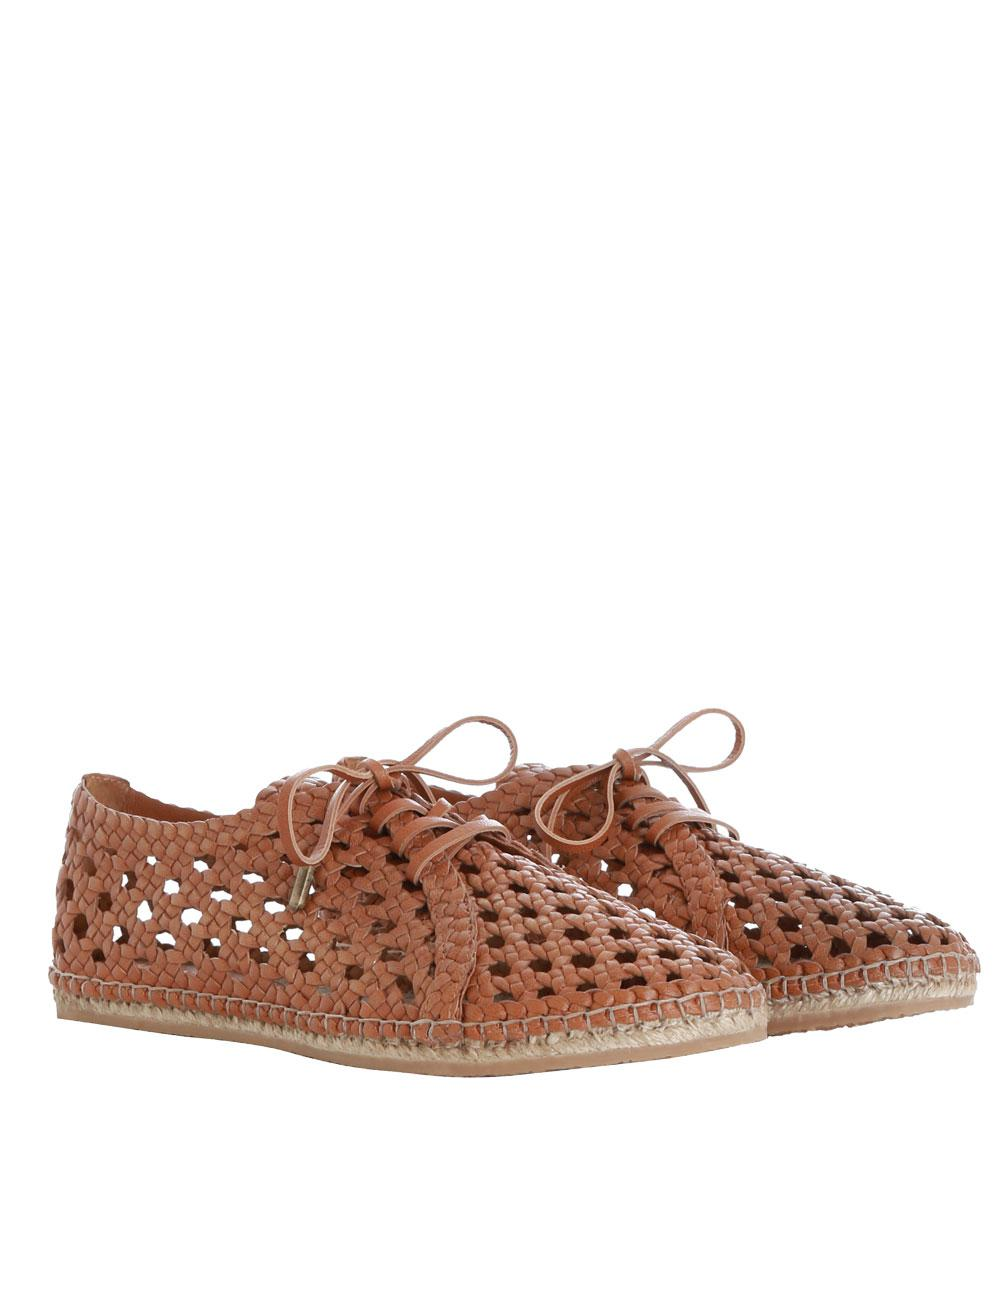 ZIMMERMANN Woman Woven Leather Platform Espadrilles Tan Size 40 In China For Sale Discount From China Clearance Great Deals OyKT4